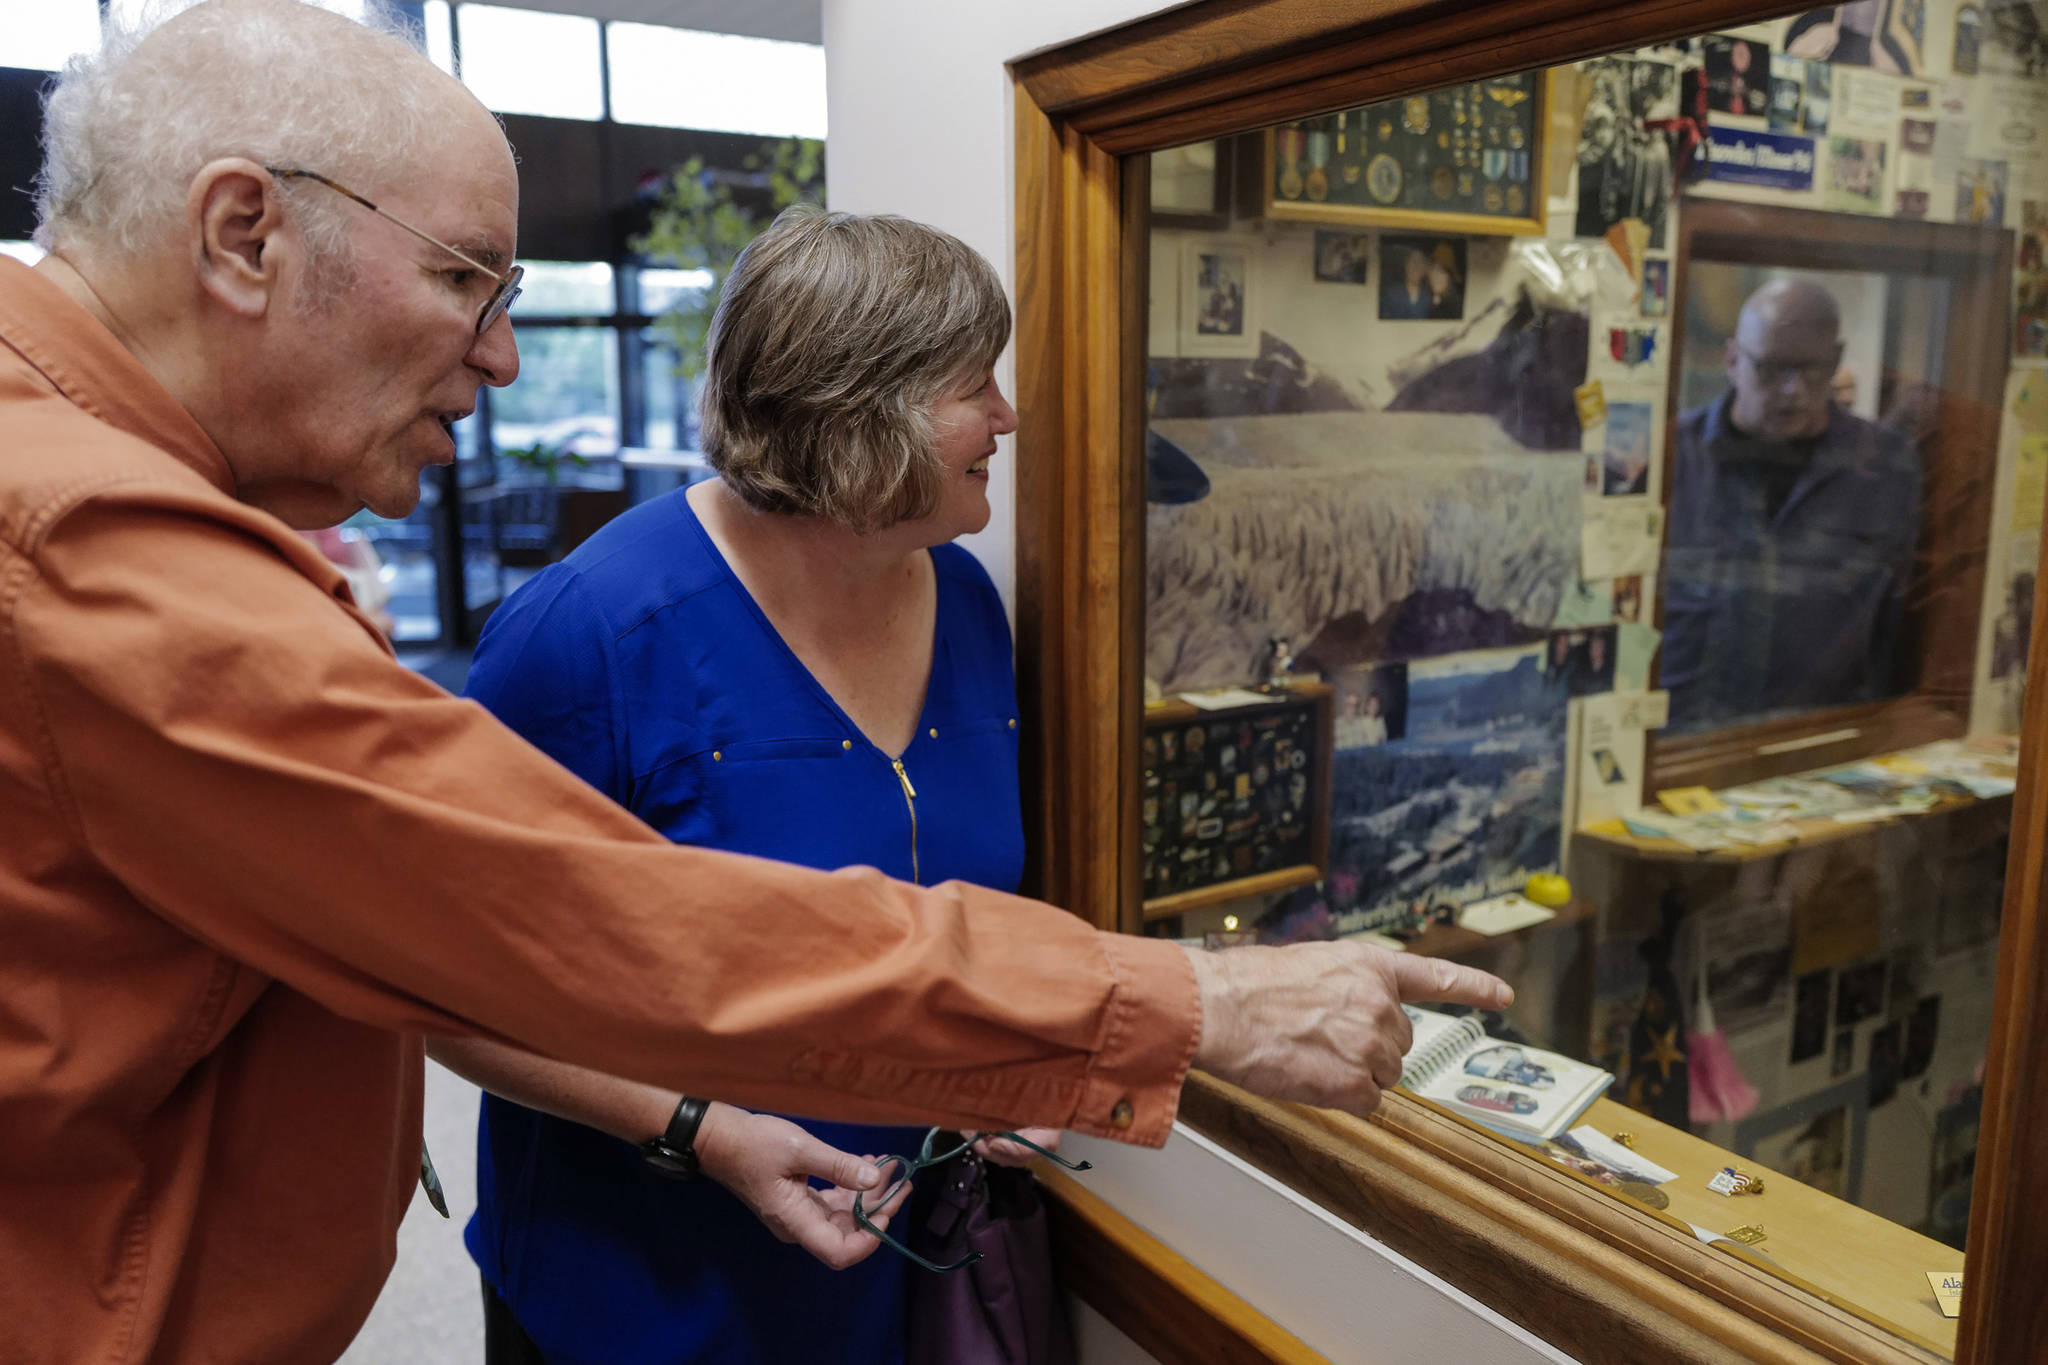 Michael Orelove, left, talks with Rep. Sara Hannan, D-Juneau, as they look at items on the 25th anniversary of the 1994 Juneau Time Capsule at the Hurff Ackerman Saunders Federal Building in Juneau on Friday, Aug. 9, 2019. Mark Farmer, right, looks in through a second window. Ovelove was on the committee that set up the capsule which is set to be opened at the 100 year mark. (Michael Penn | Juneau Empire)